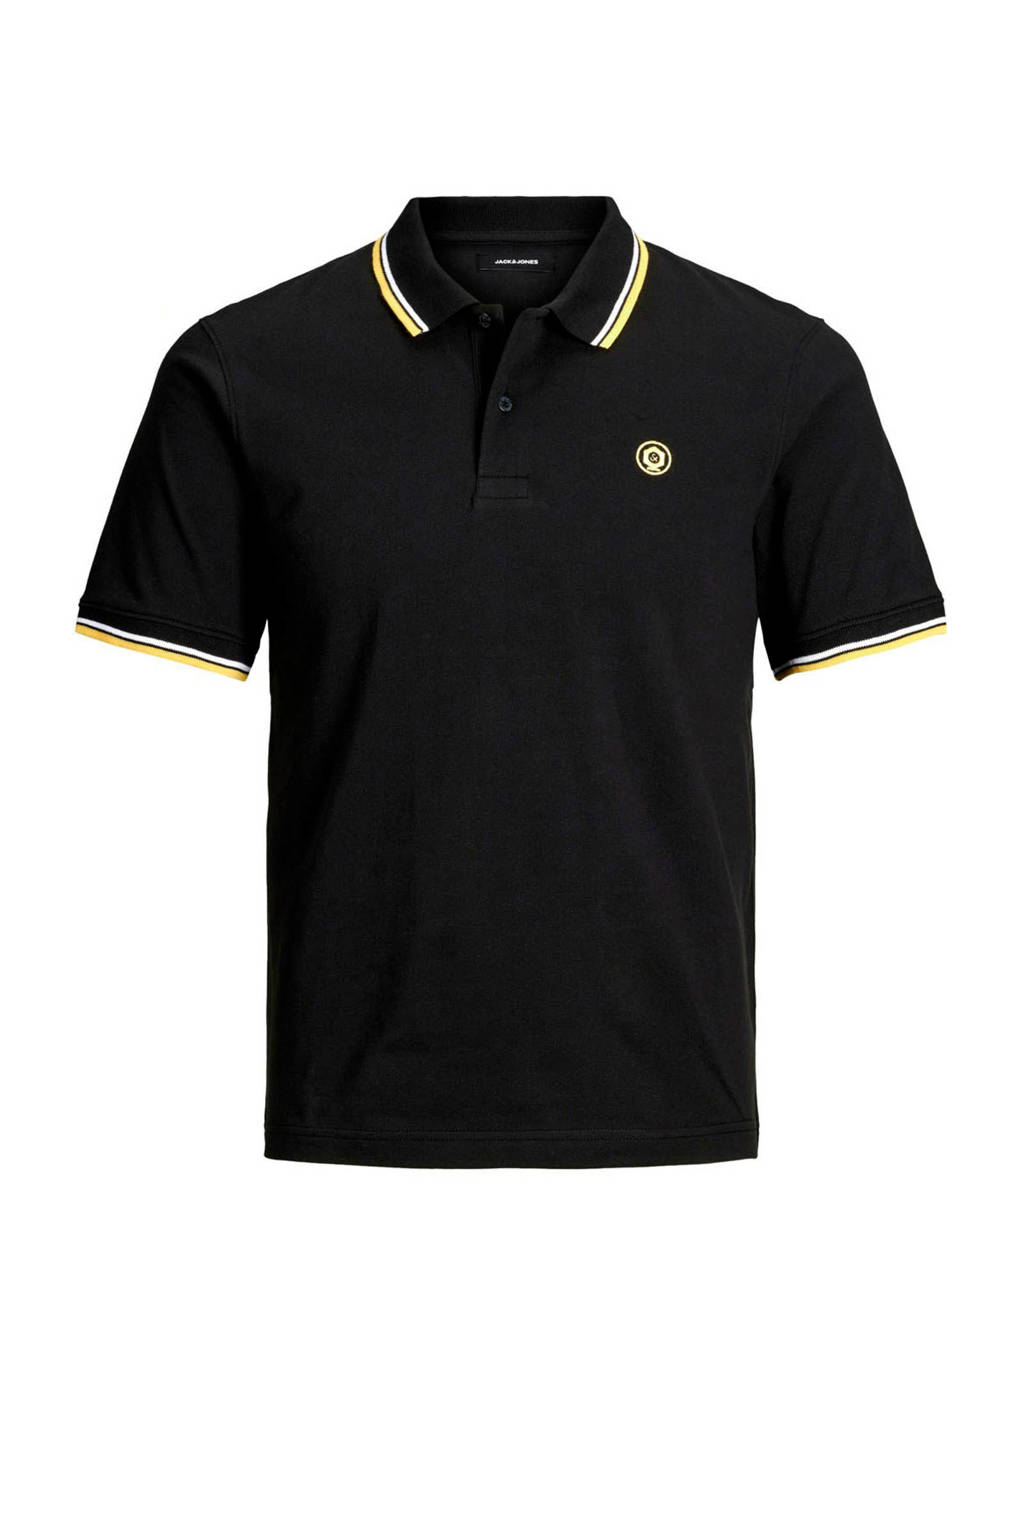 JACK & JONES JUNIOR polo Noah met borduursels zwart, Zwart